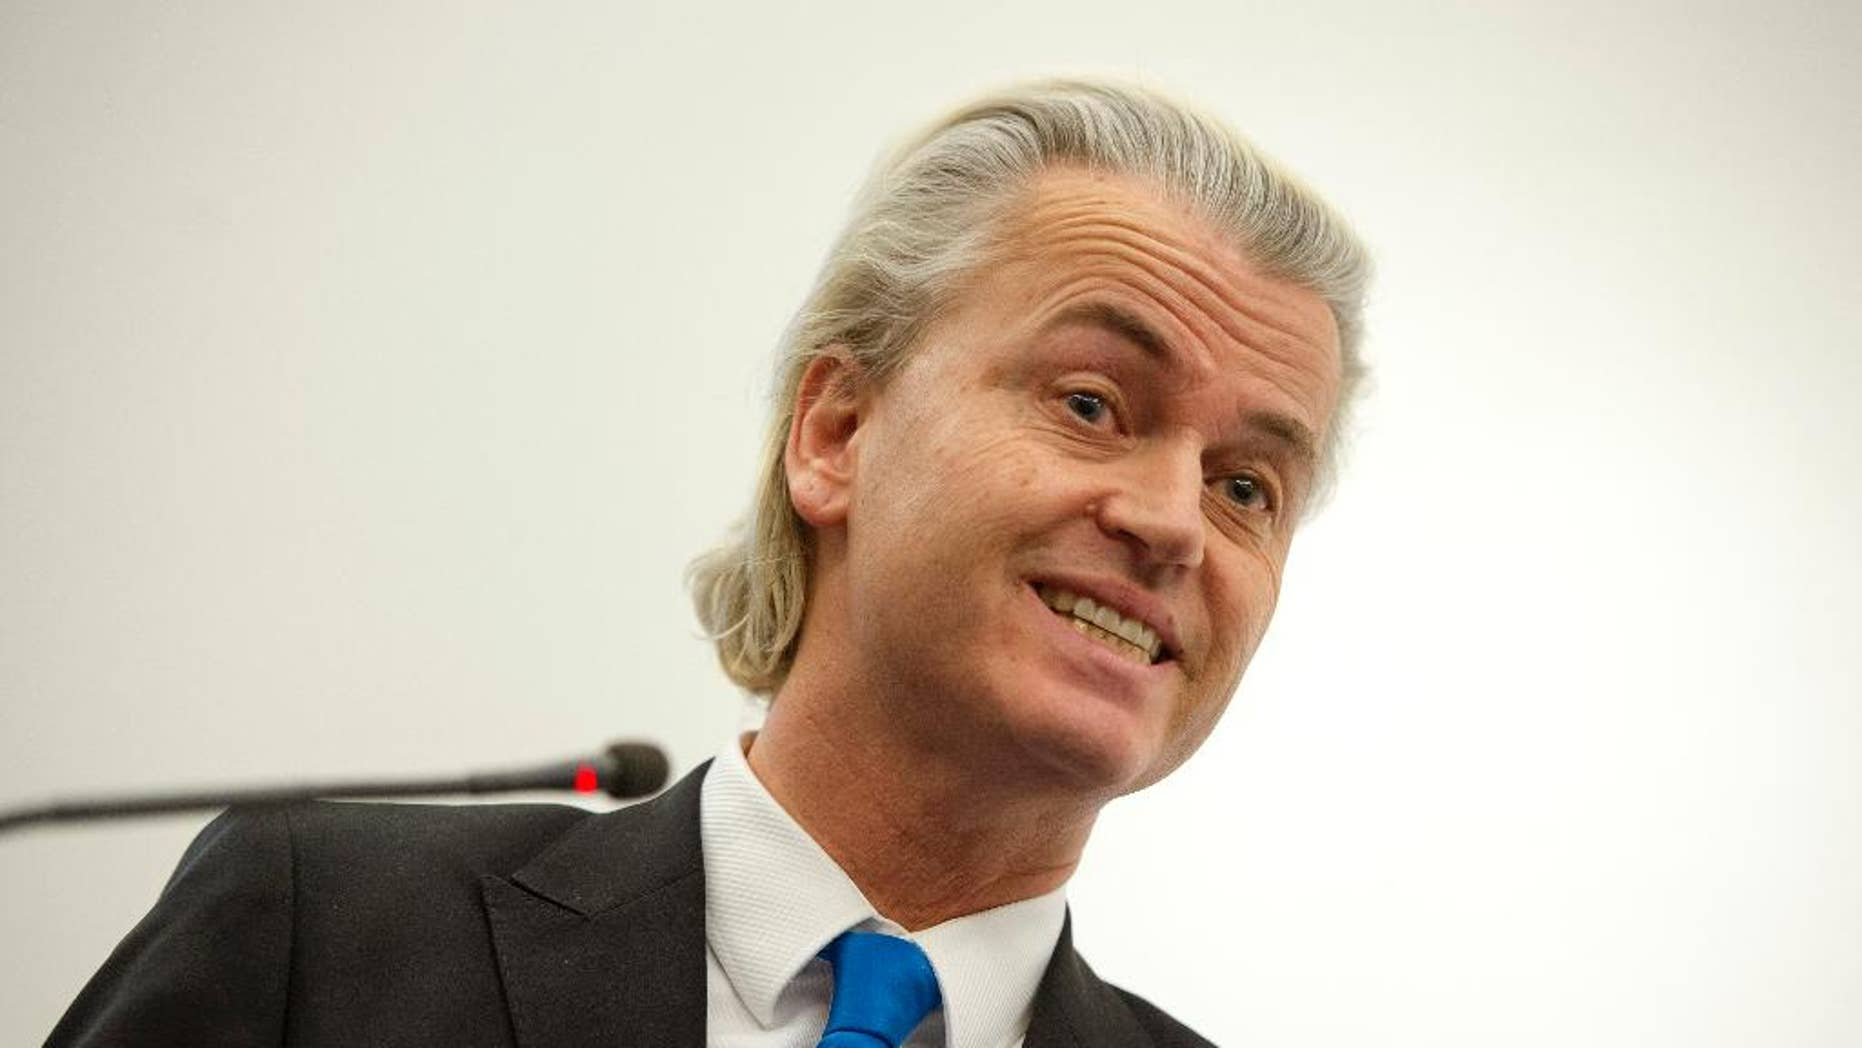 """FILE - In this Thursday, Feb. 6, 2014 file photo, Dutch populist politician Geert Wilders presents a study, during a press conference in The Hague, Netherlands. The Dutch right-wing populist politician Geert Wilders has led his supporters in an anti-Moroccan chant. At a party meeting Wednesday evening, March 19, 2014 in The Hague, where his Freedom Party is set to win the most votes in municipal elections, Wilders asked supporters whether they wanted """"more or fewer"""" Moroccans in the Netherlands. His supporters chanted back: """"Fewer! Fewer! Fewer!"""" before breaking into applause. Wilders' party is the fourth-largest in Parliament but leads in national opinion polls. His rise to popularity in the Netherlands over the past decade came amid a surge of anti-immigrant sentiment in a country once famed for its tolerance. (AP Photo/Patrick Post, File)"""